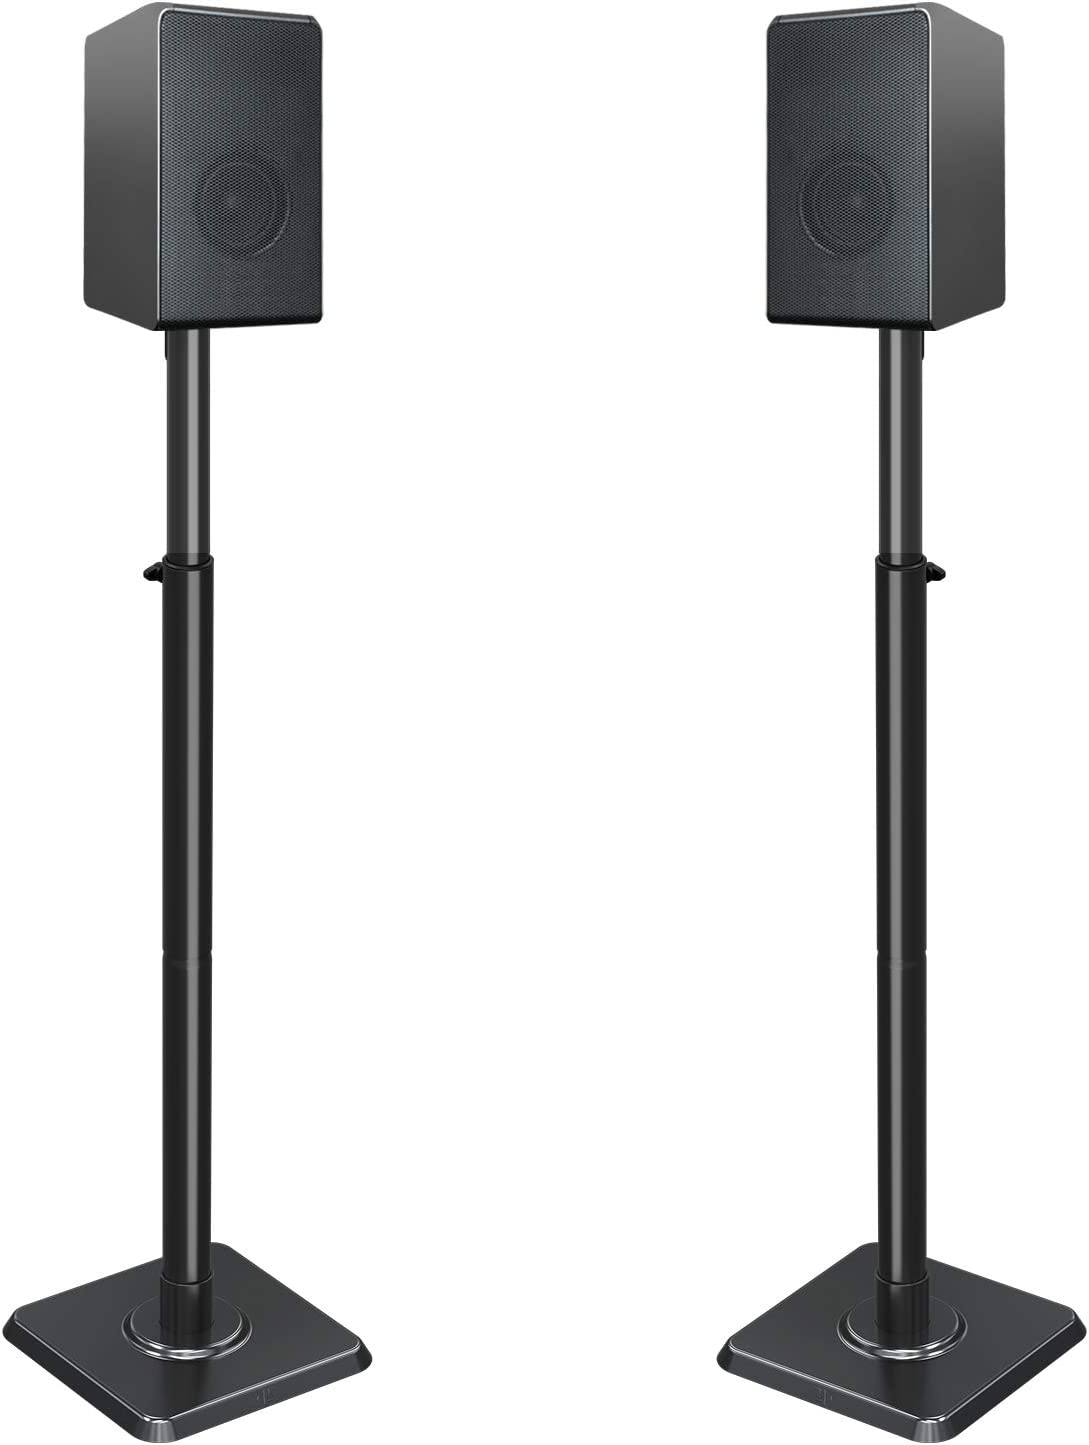 Amazon.com: Mounting Dream Speaker Stands for Satellite & Small